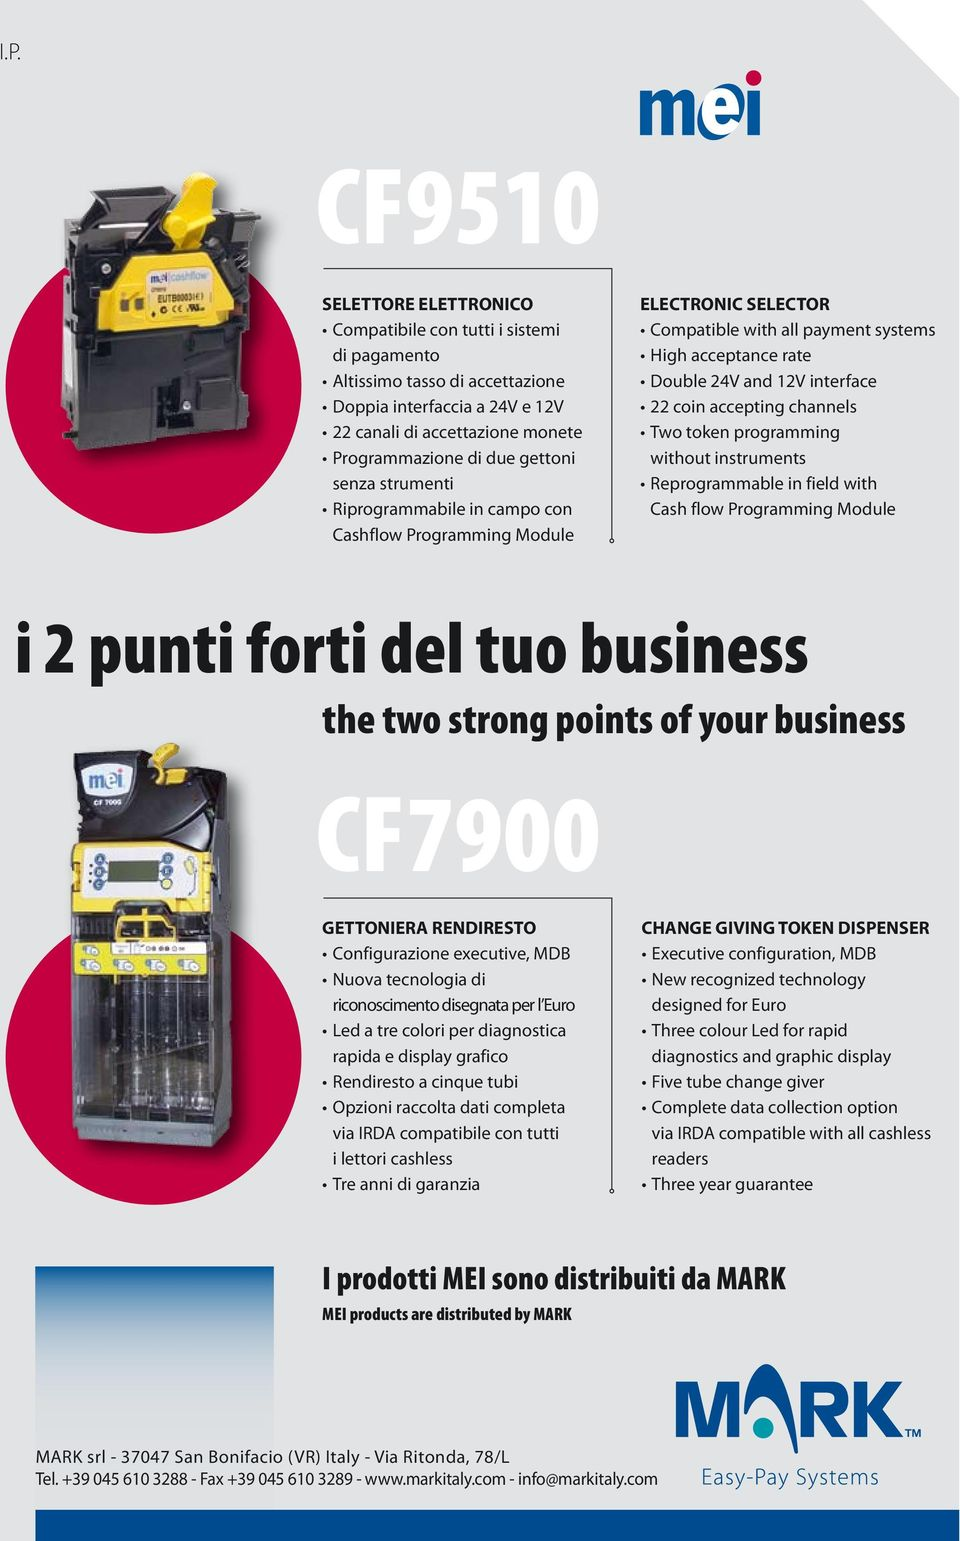 accepting channels Two token programming without instruments Reprogrammable in field with Cash flow Programming Module i 2 punti forti del tuo business the two strong points of your business CF7900